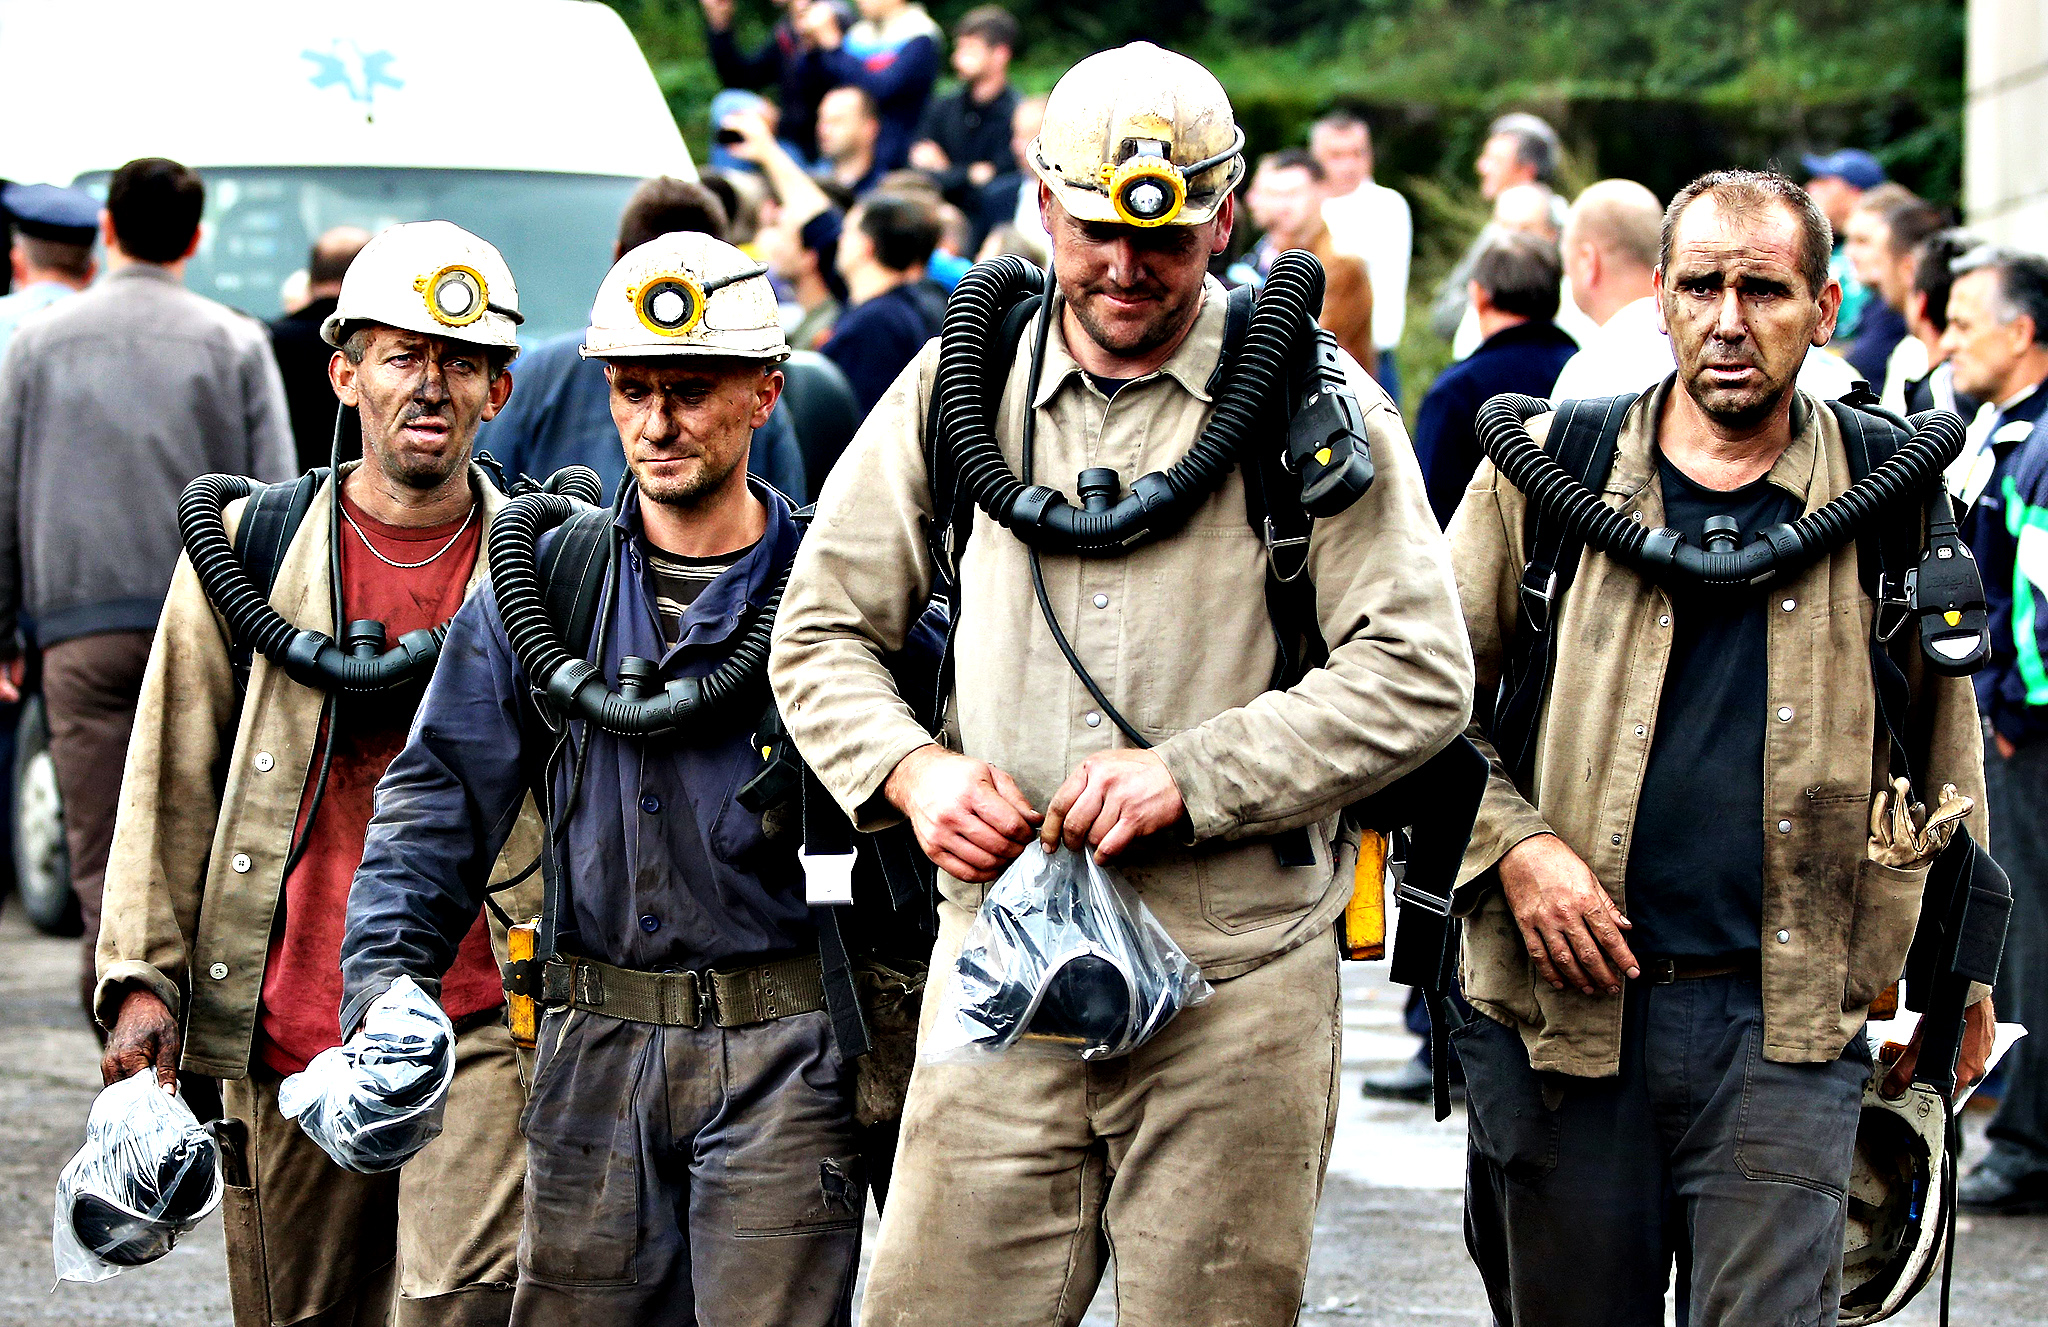 Bosnian rescue miners return from a mission underground at the coal mine Raspotocje in the central Bosnian town of Zenica, Bosnia and Herzegovina, 05 September 2014. Rescuers are attempting to reach at least five miners still trapped in the Bosnian coal mine after a tunnel partially collapsed, local media reported. The rescuers were in contact with the 34 miners on the other side of the cave-in caused by a minor earthquake on 04 September. The 133-year-old mine at Zenica, some 60 kilometres northwest of Sarajevo, was already hit by cave-in in March 2014 injuring 11 miners, and another fatal accident in 2013.